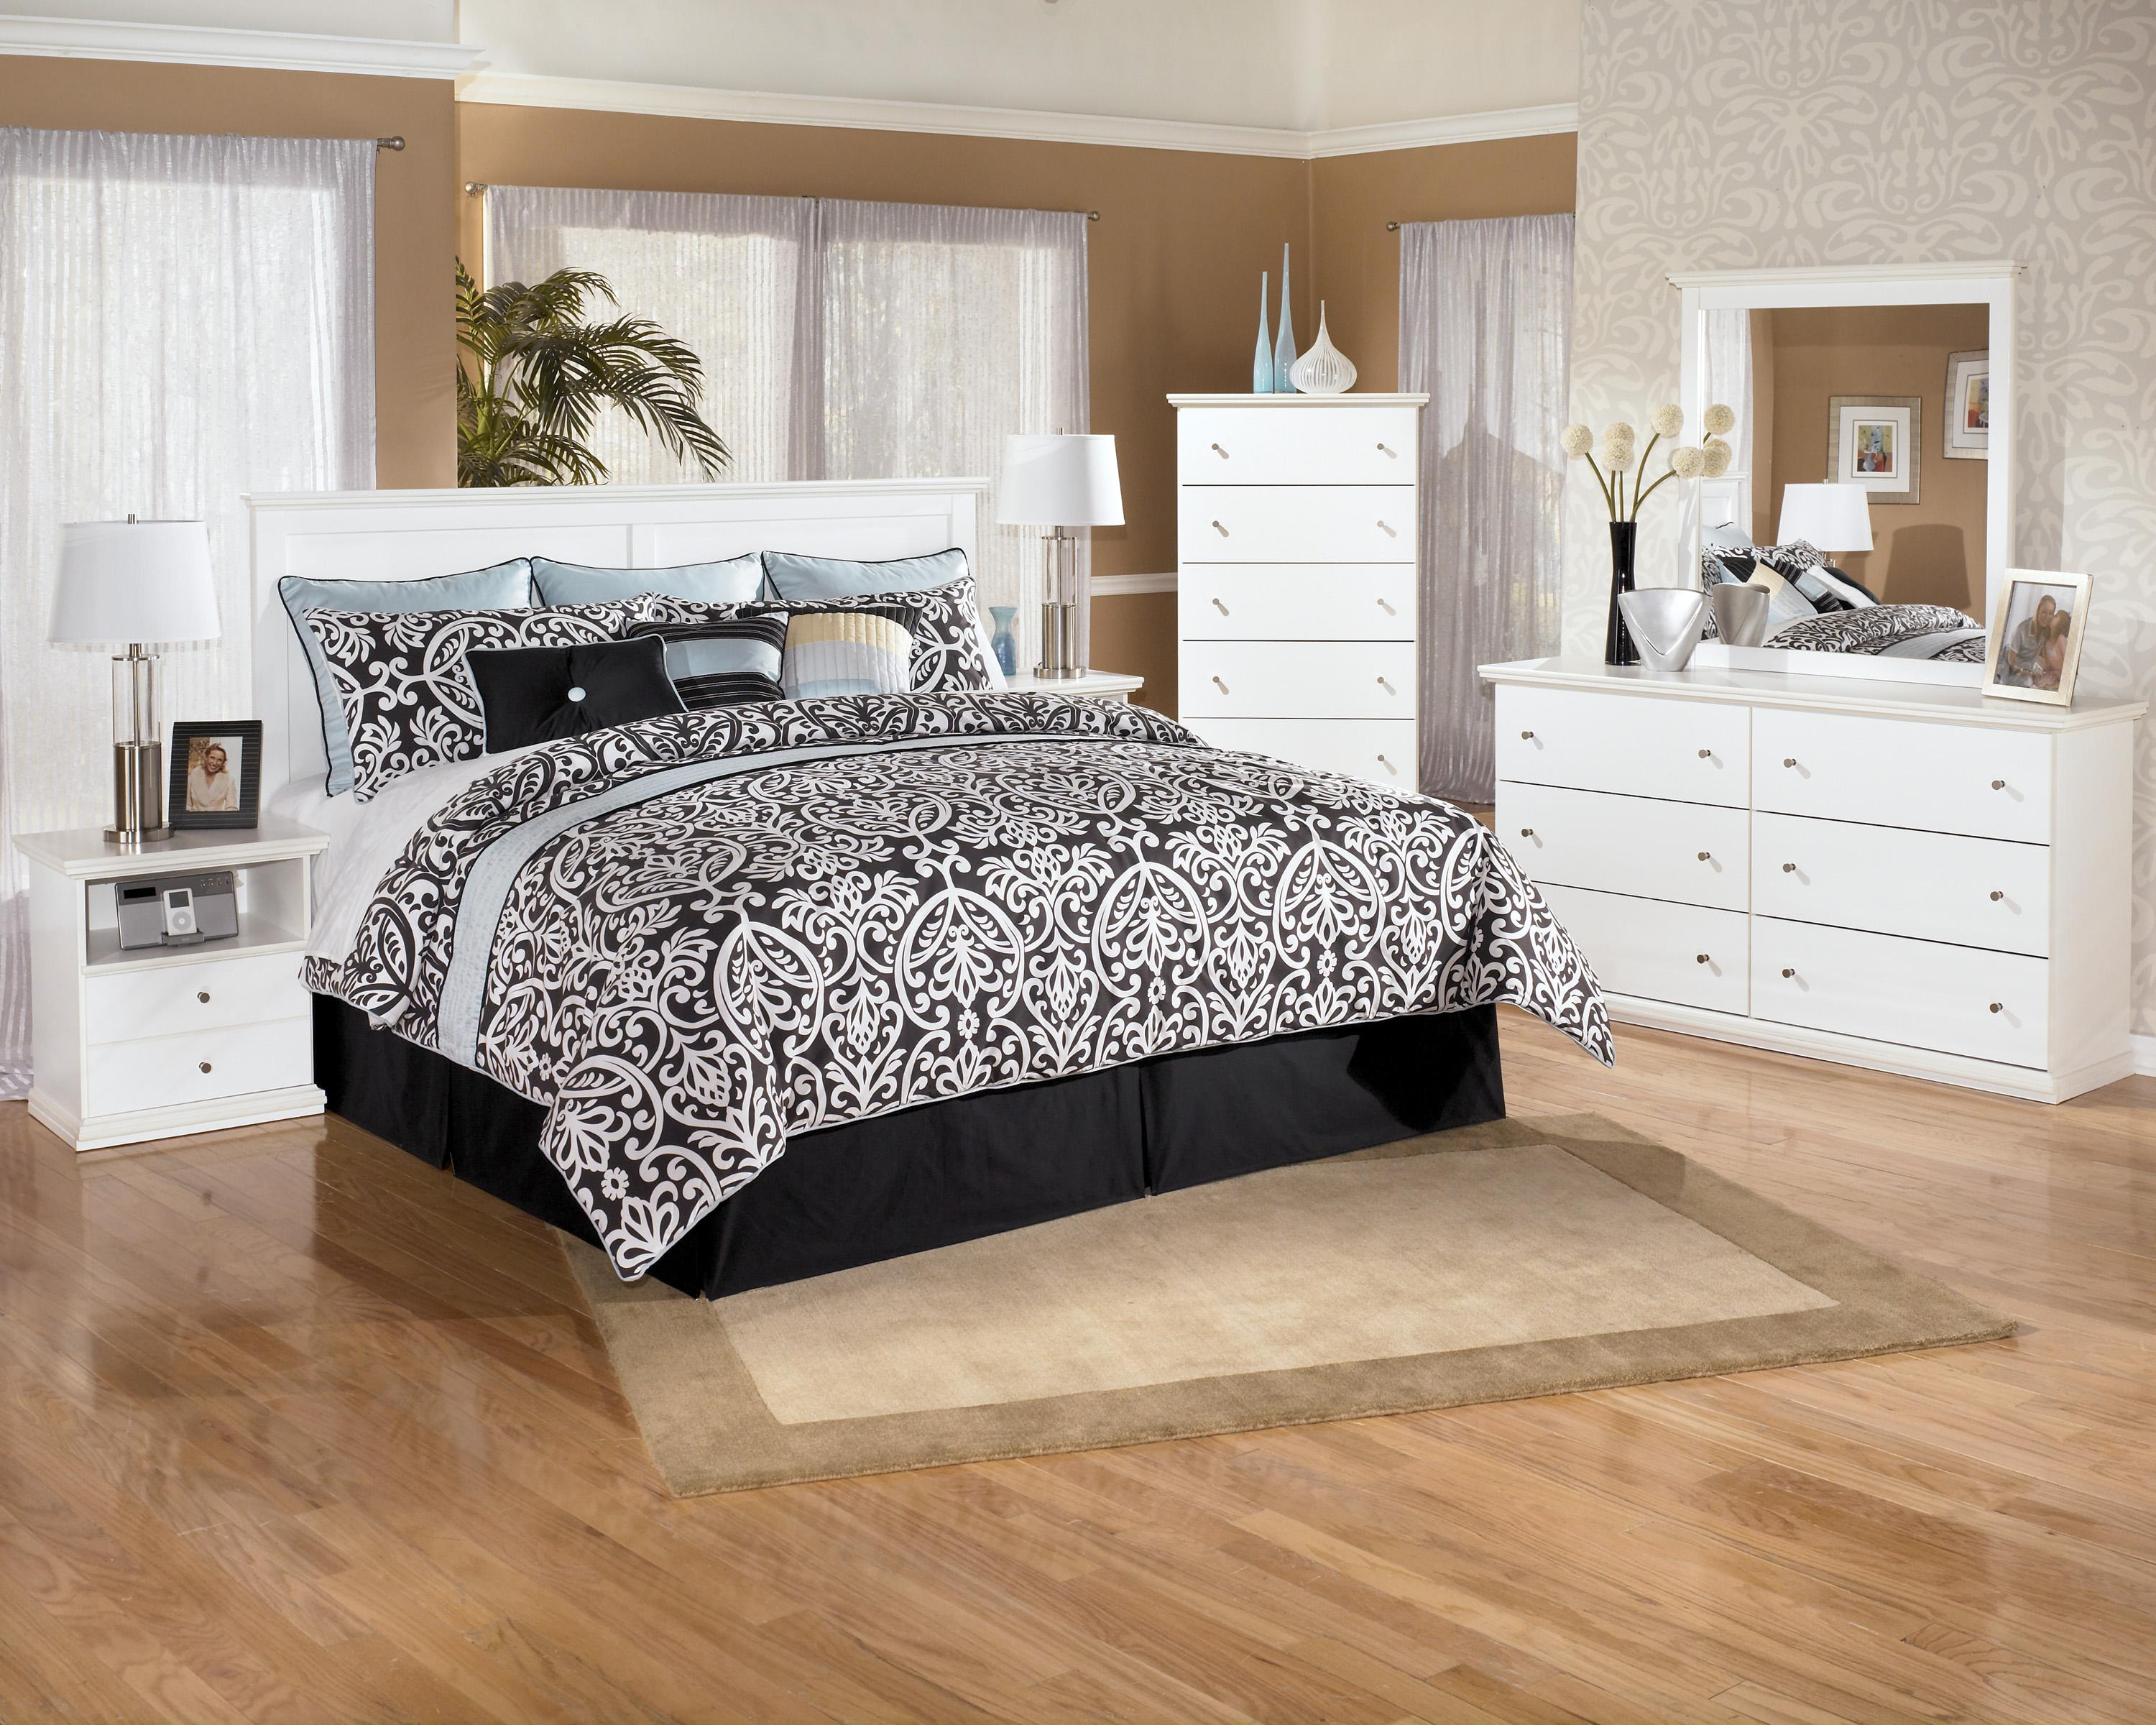 queen king north set tufted drawers size bed stunning ashley shore marvellous remarkable upholstered with headboard pillars sleigh furniture frame platform headboards bedroom luxury